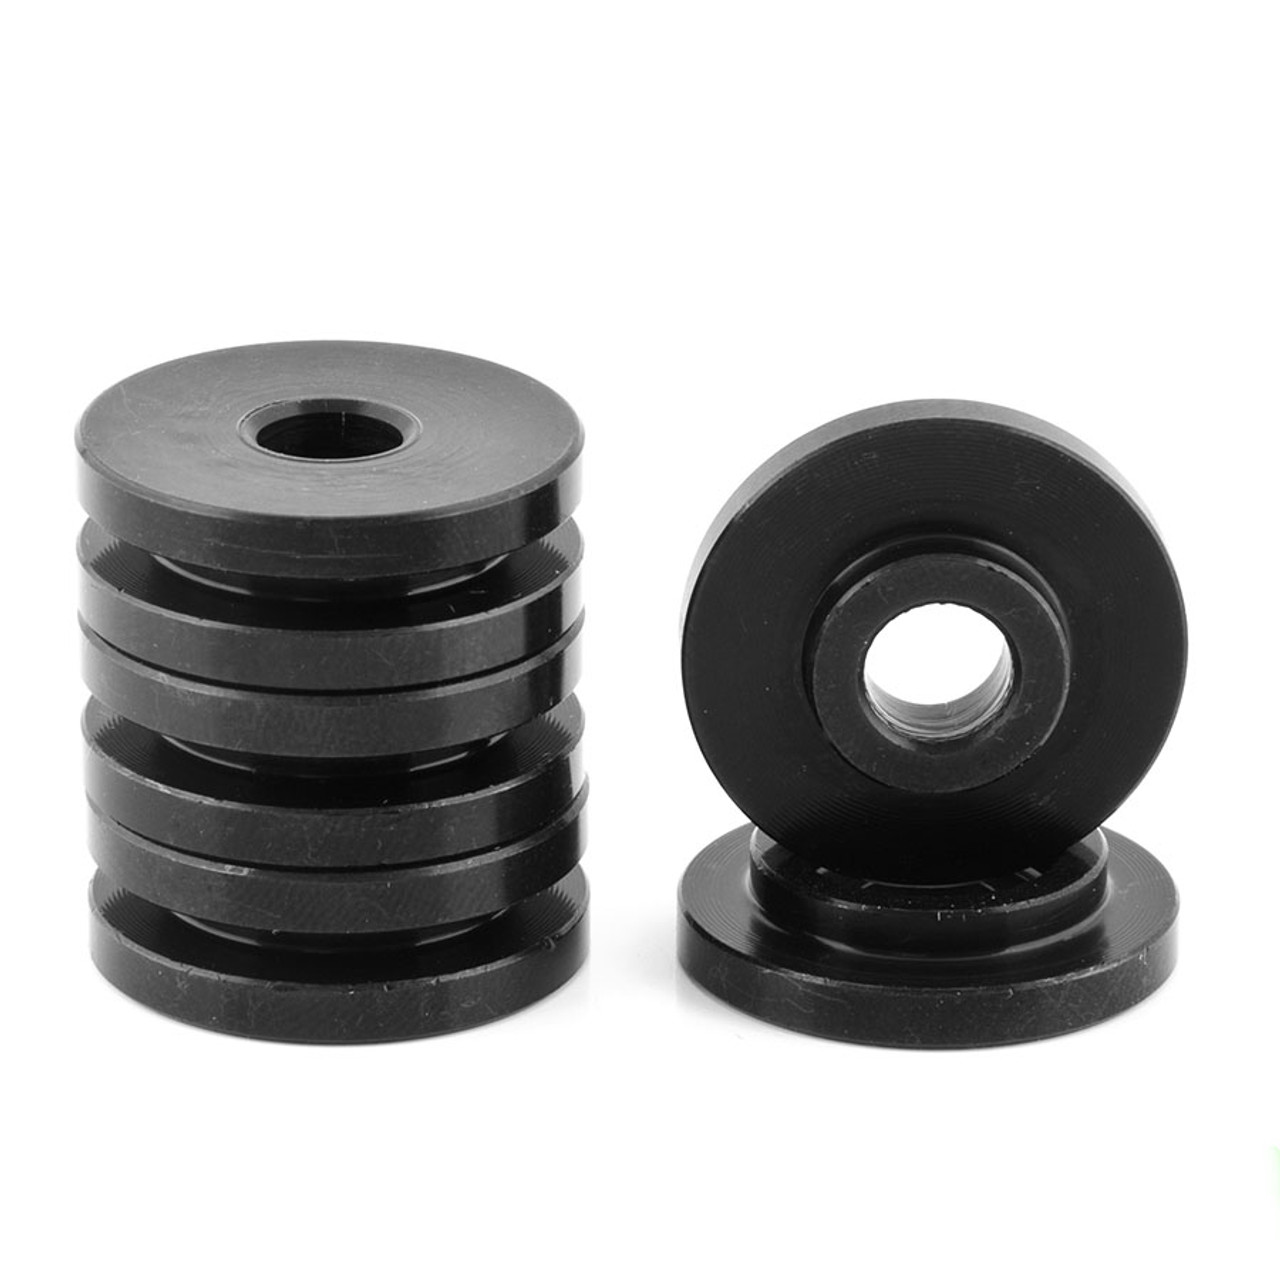 Focus ST Aluminum Shifter Base Bushings